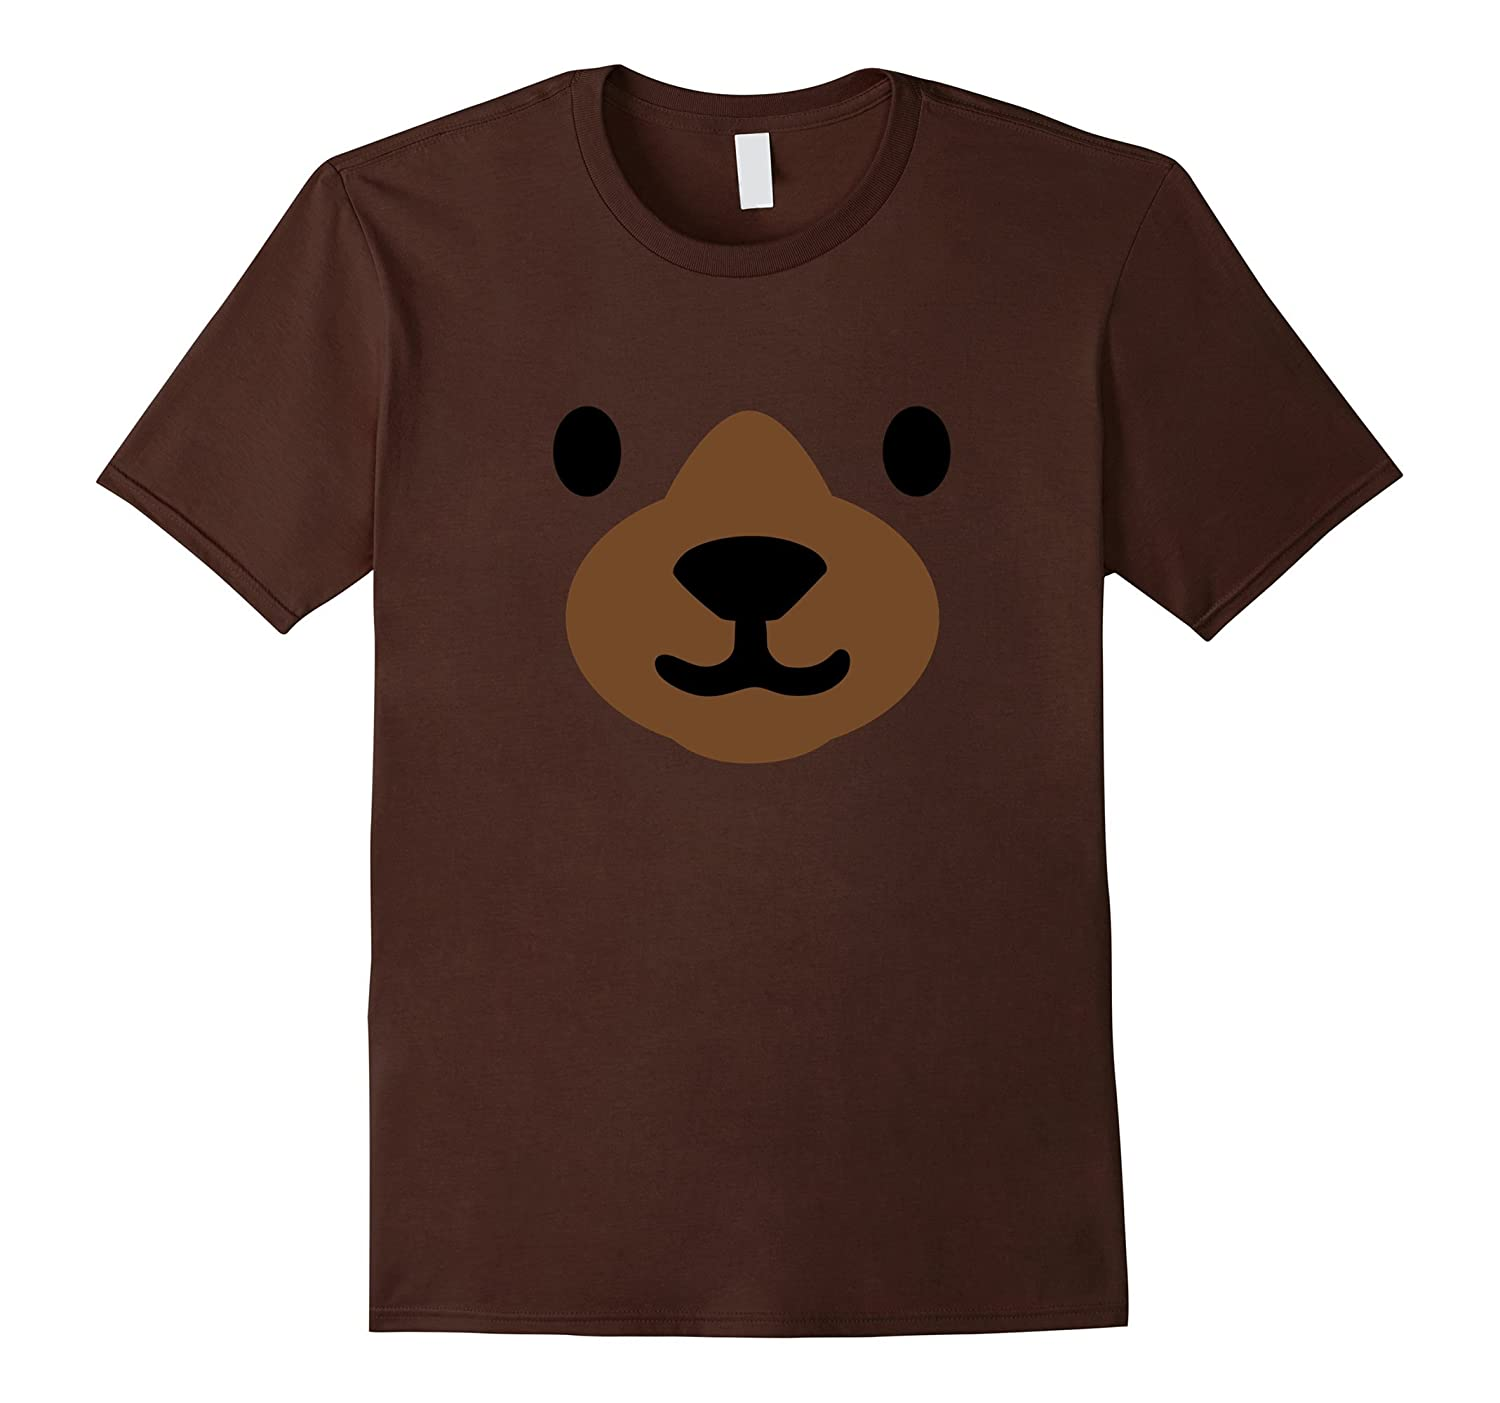 Bear Face Halloween Costume Shirt Funny Easy for Kids Adults-AZP